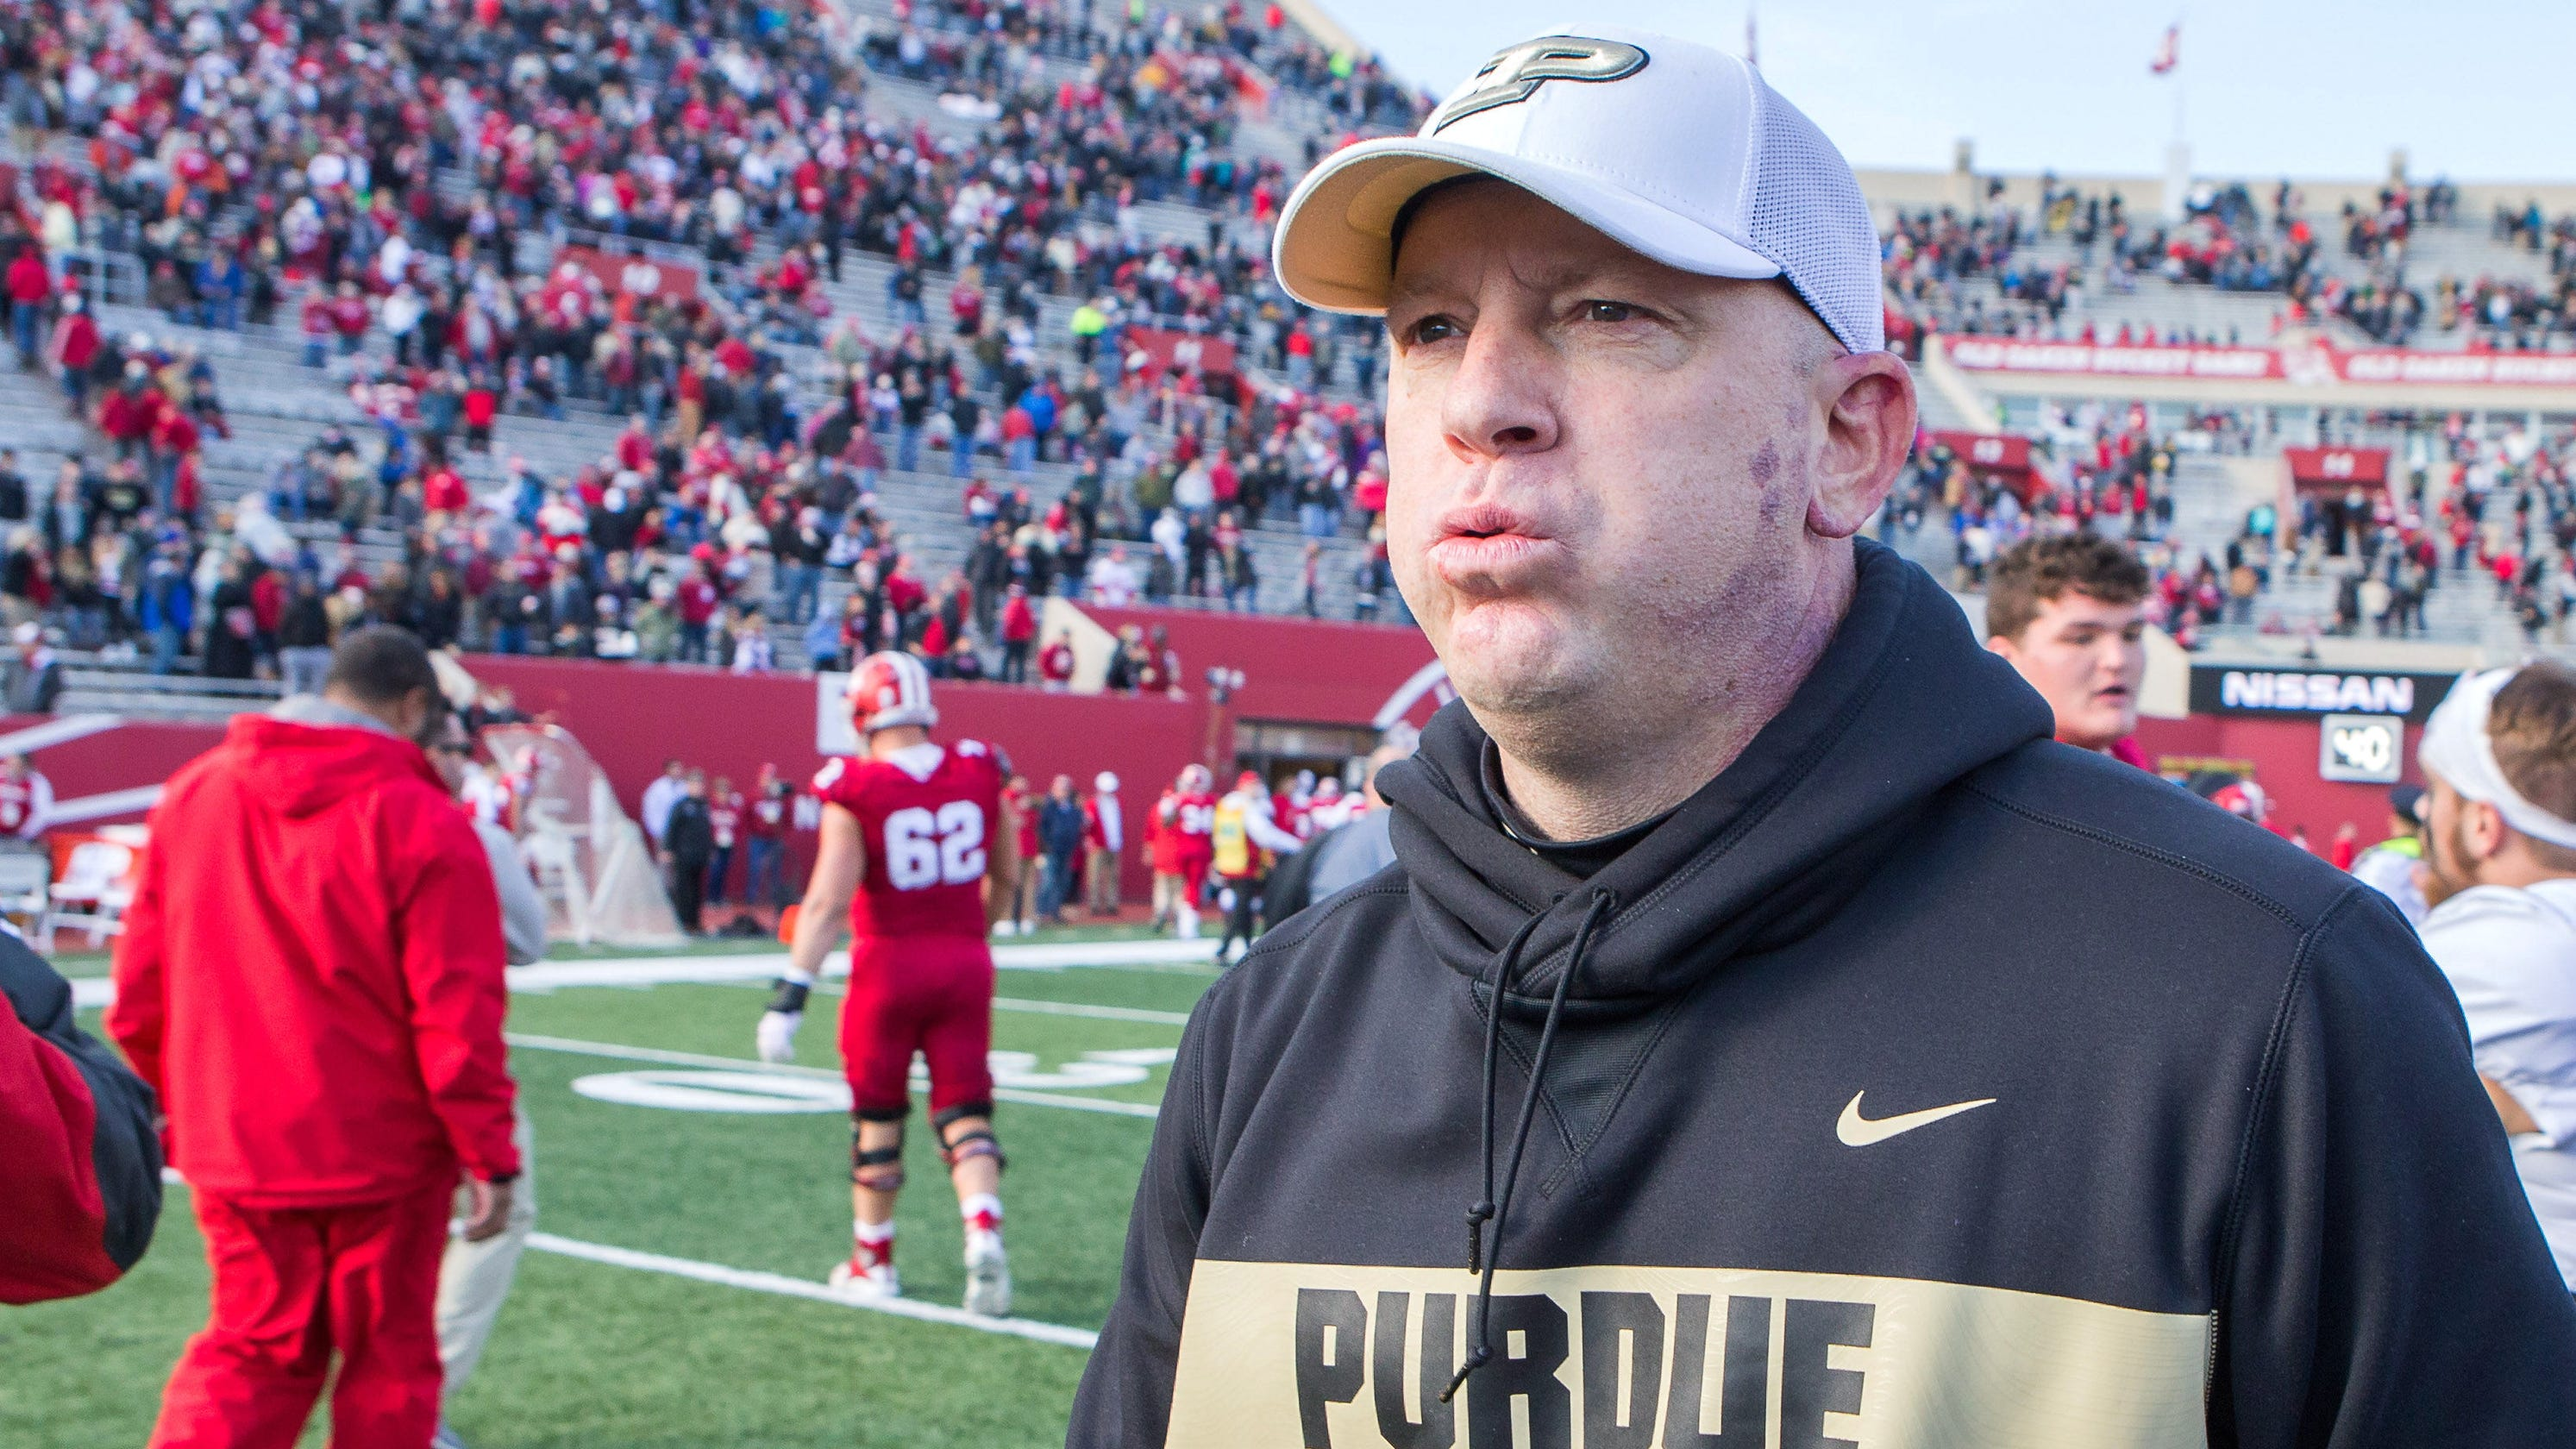 Future of Purdue's football program rests with Jeff Brohm